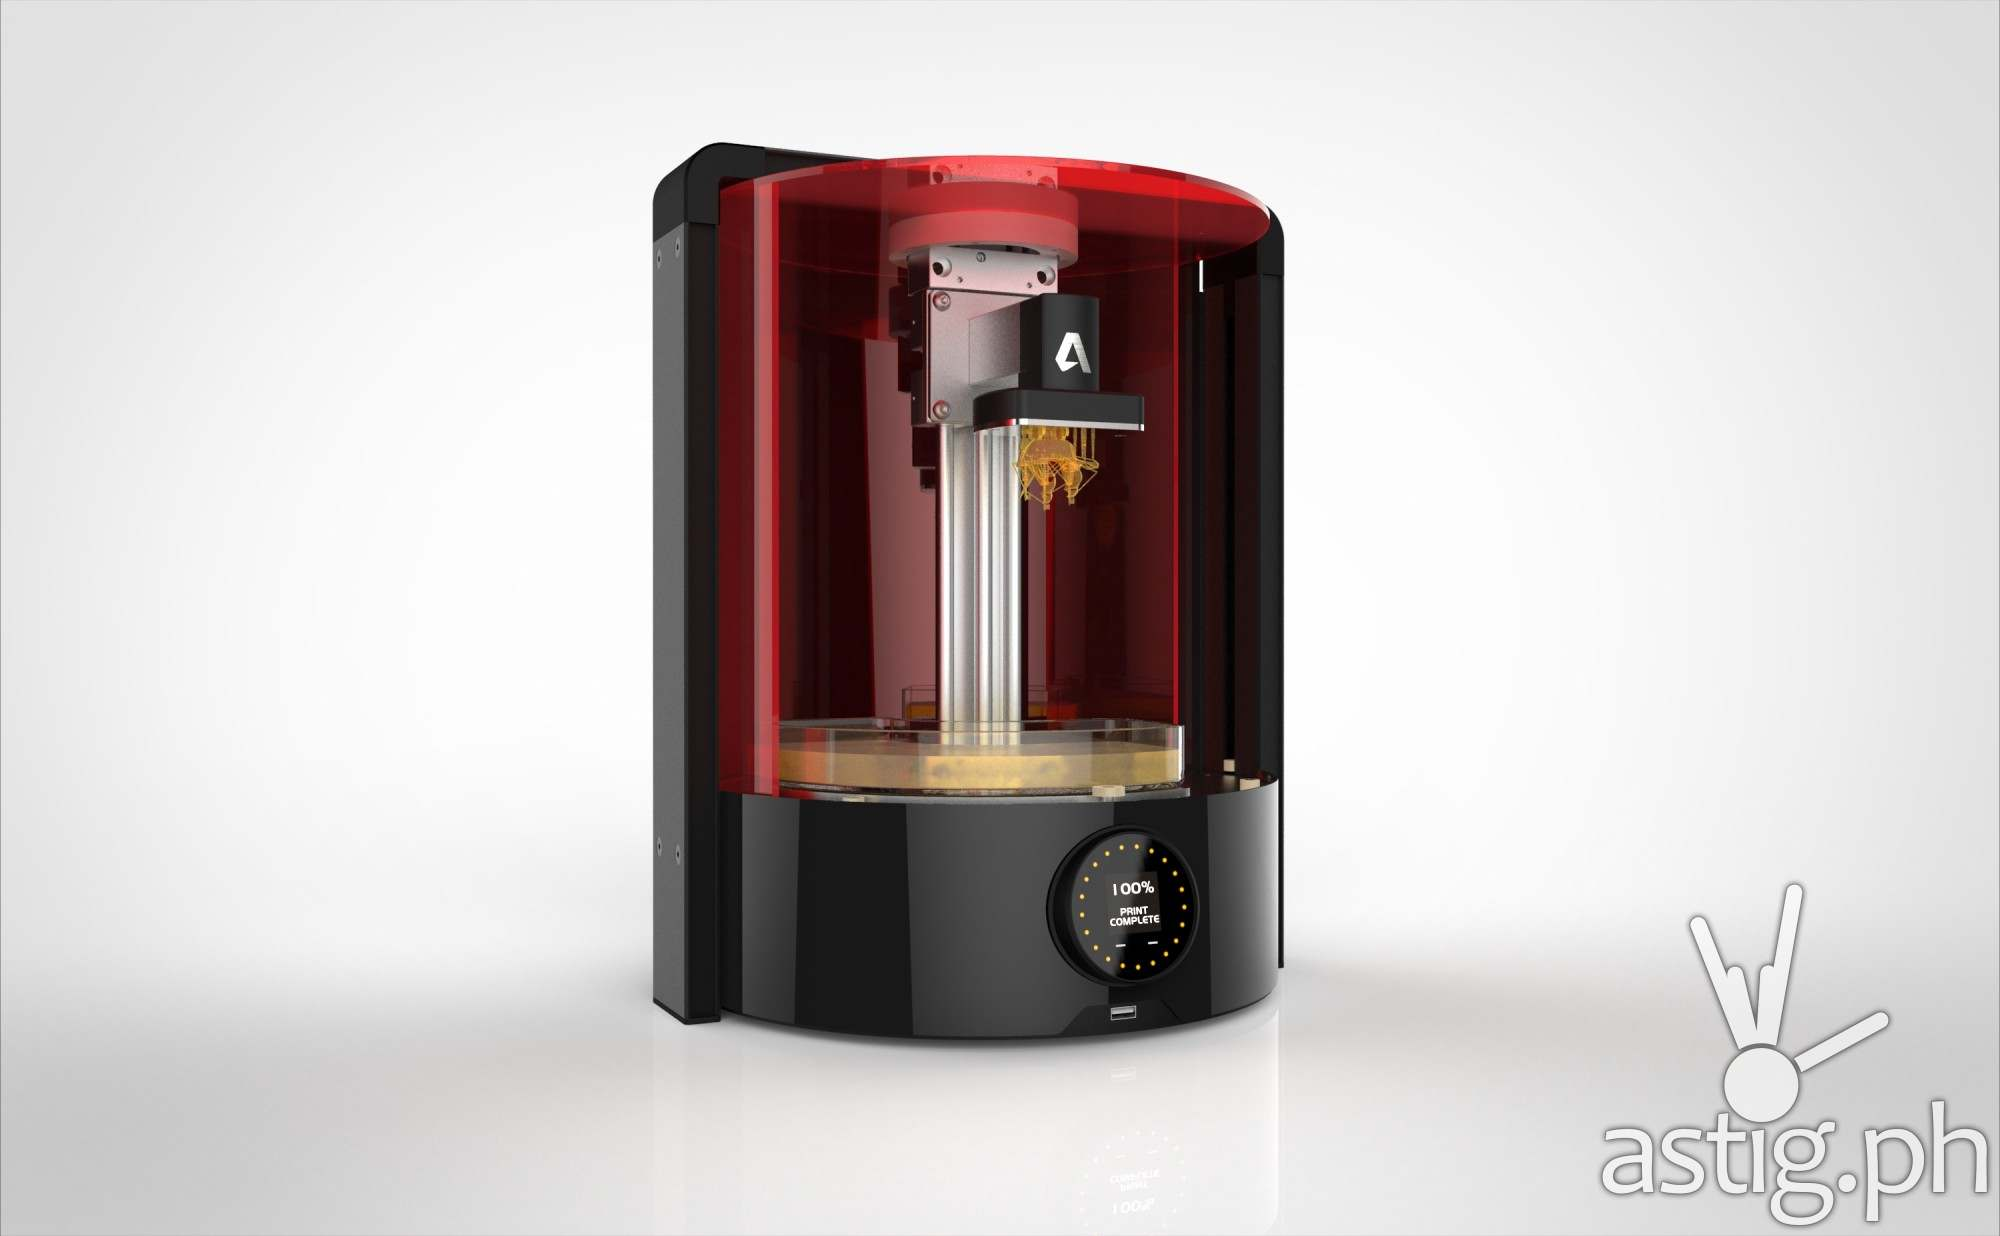 Autodesk 3D printer